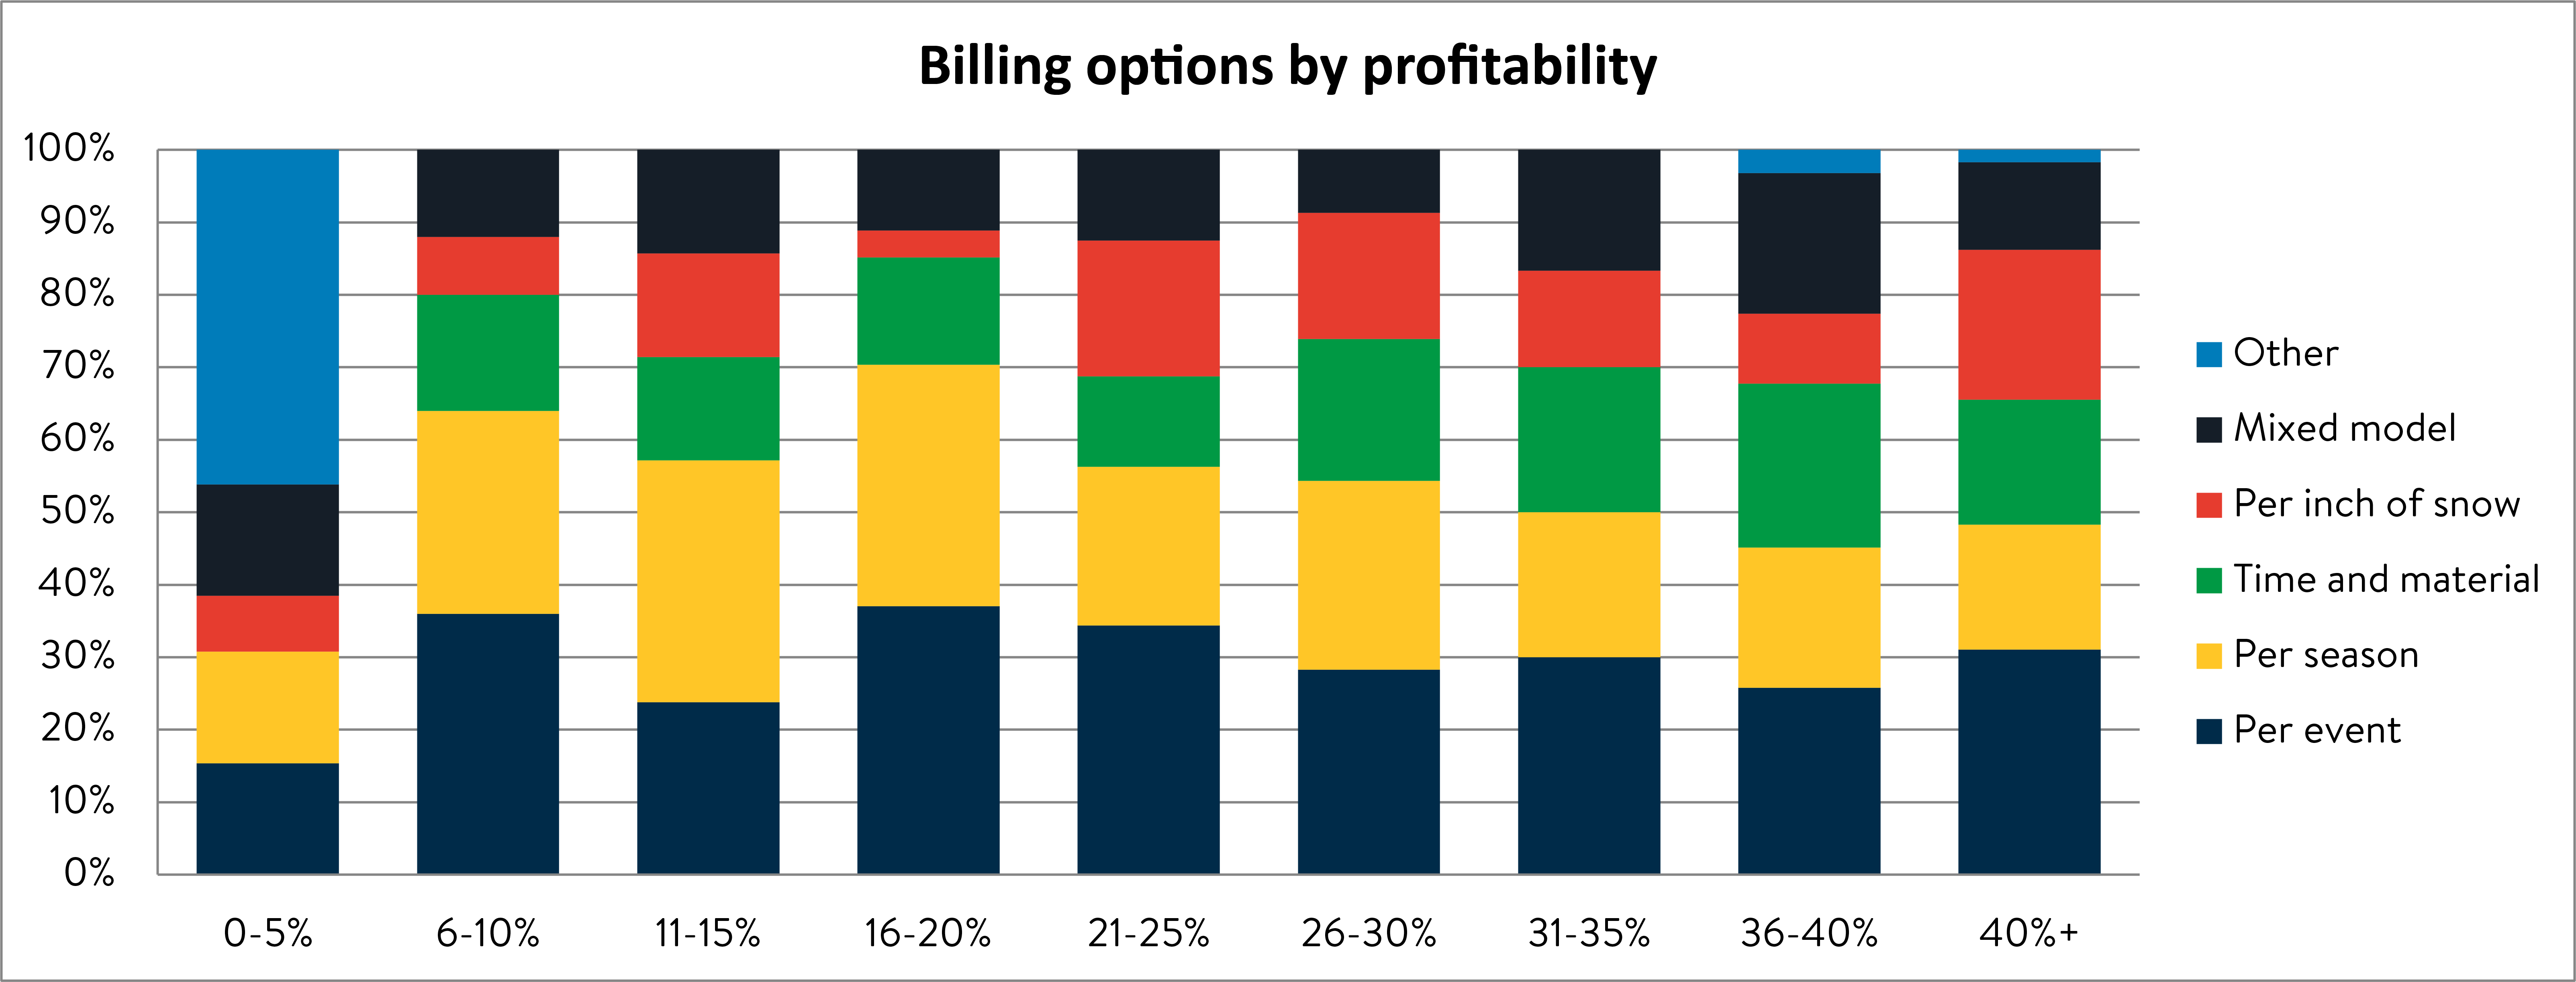 Billing options by profitability